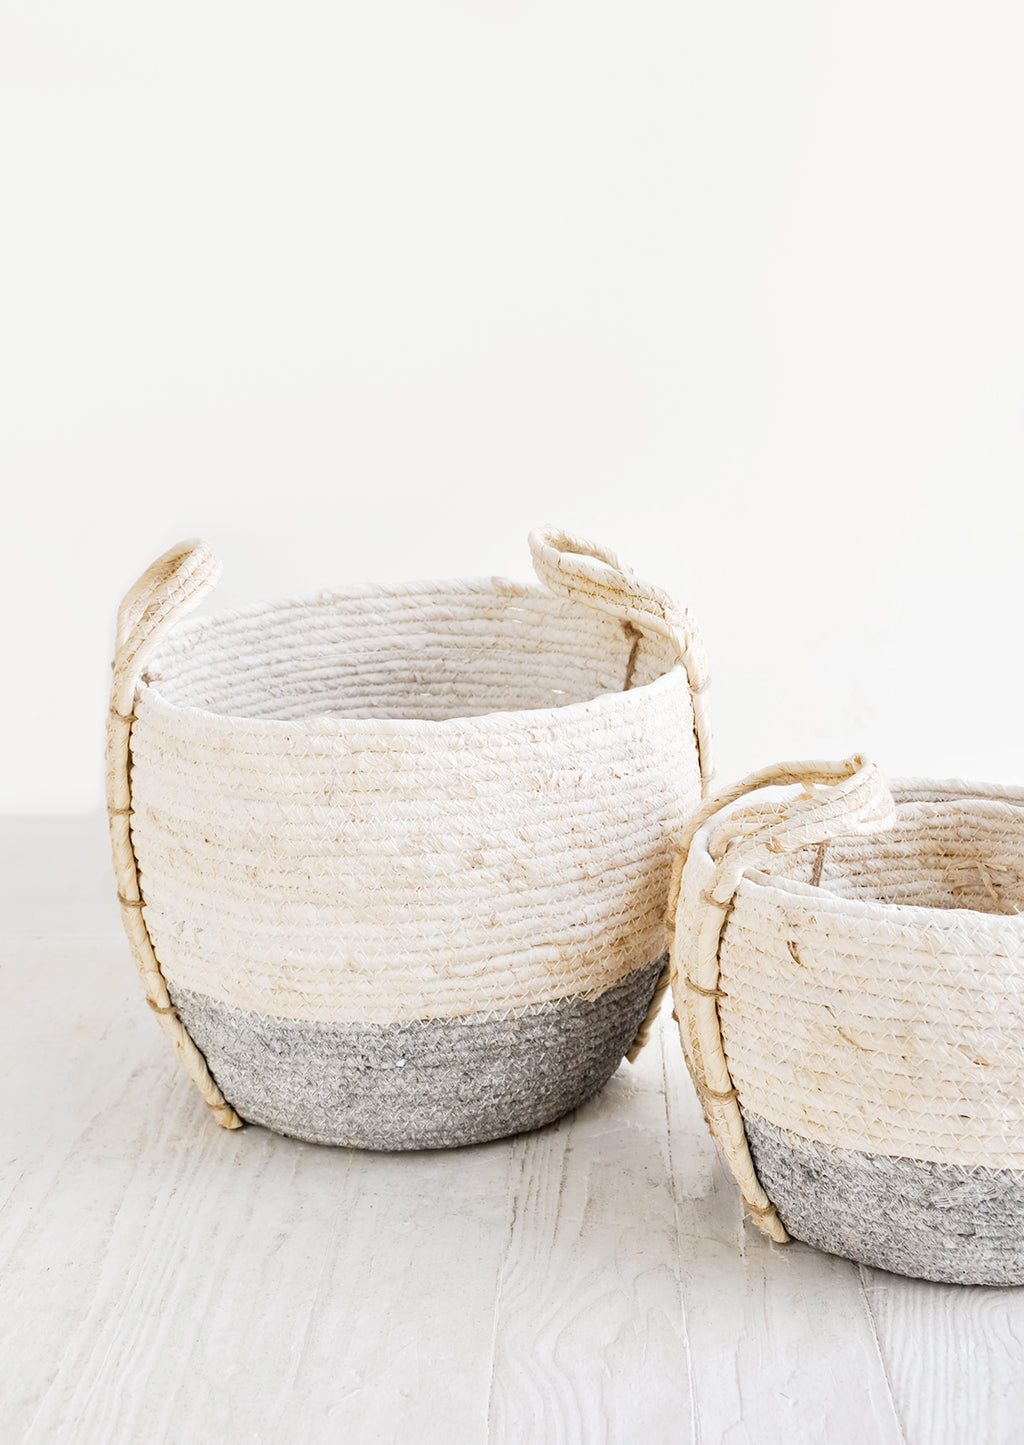 Slate / Low [Small]: Small, round storage baskets made from natural maize fiber, fiber handles attached at sides, band of contrasting grey color along bottom.